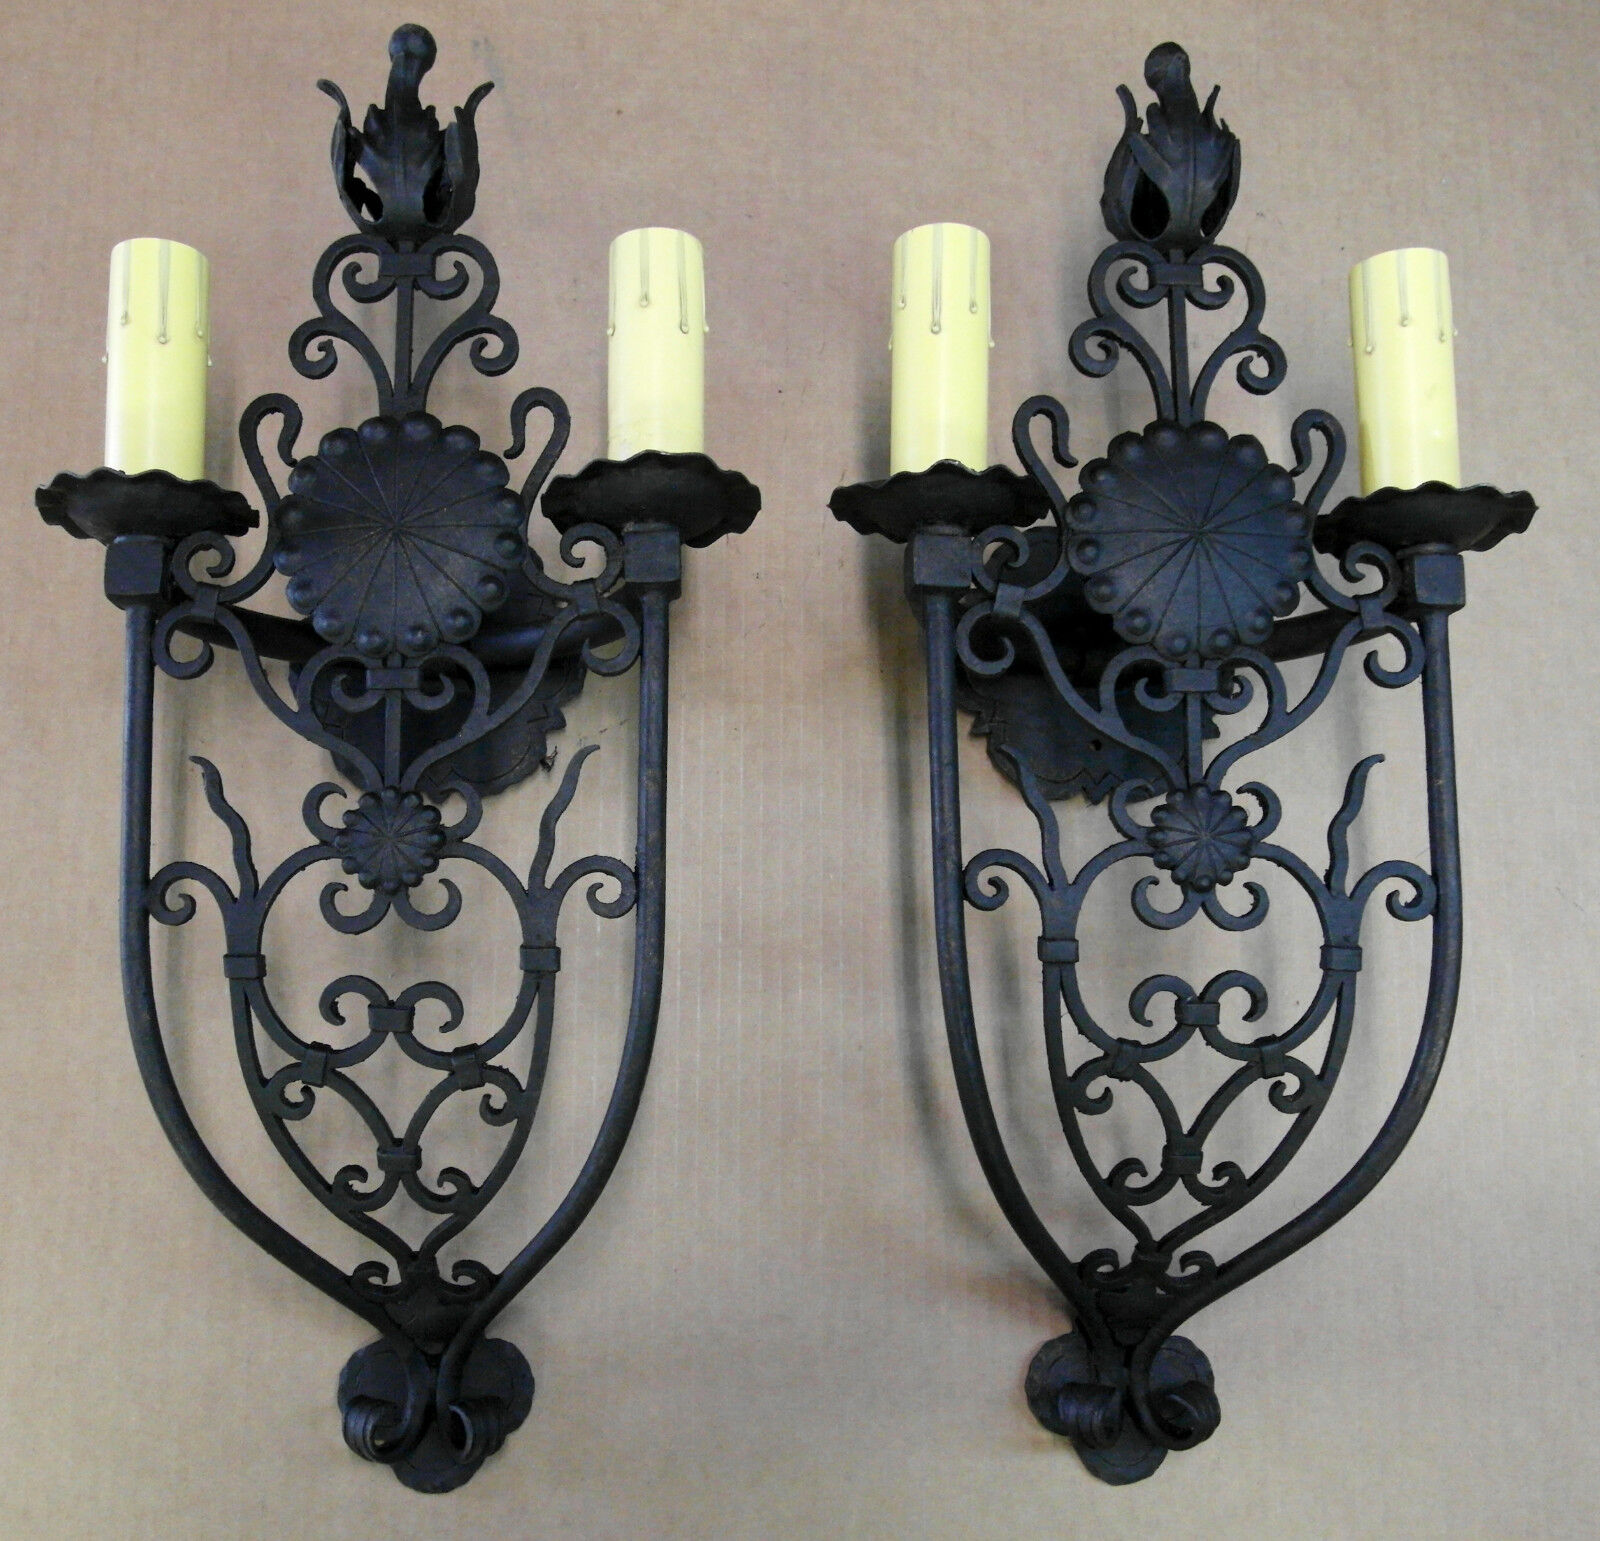 @ PAIR 1920S STYLE WROUGHT IRON SPANISH REVIVAL TUSCAN MISSION WALL SCONCE LAMP